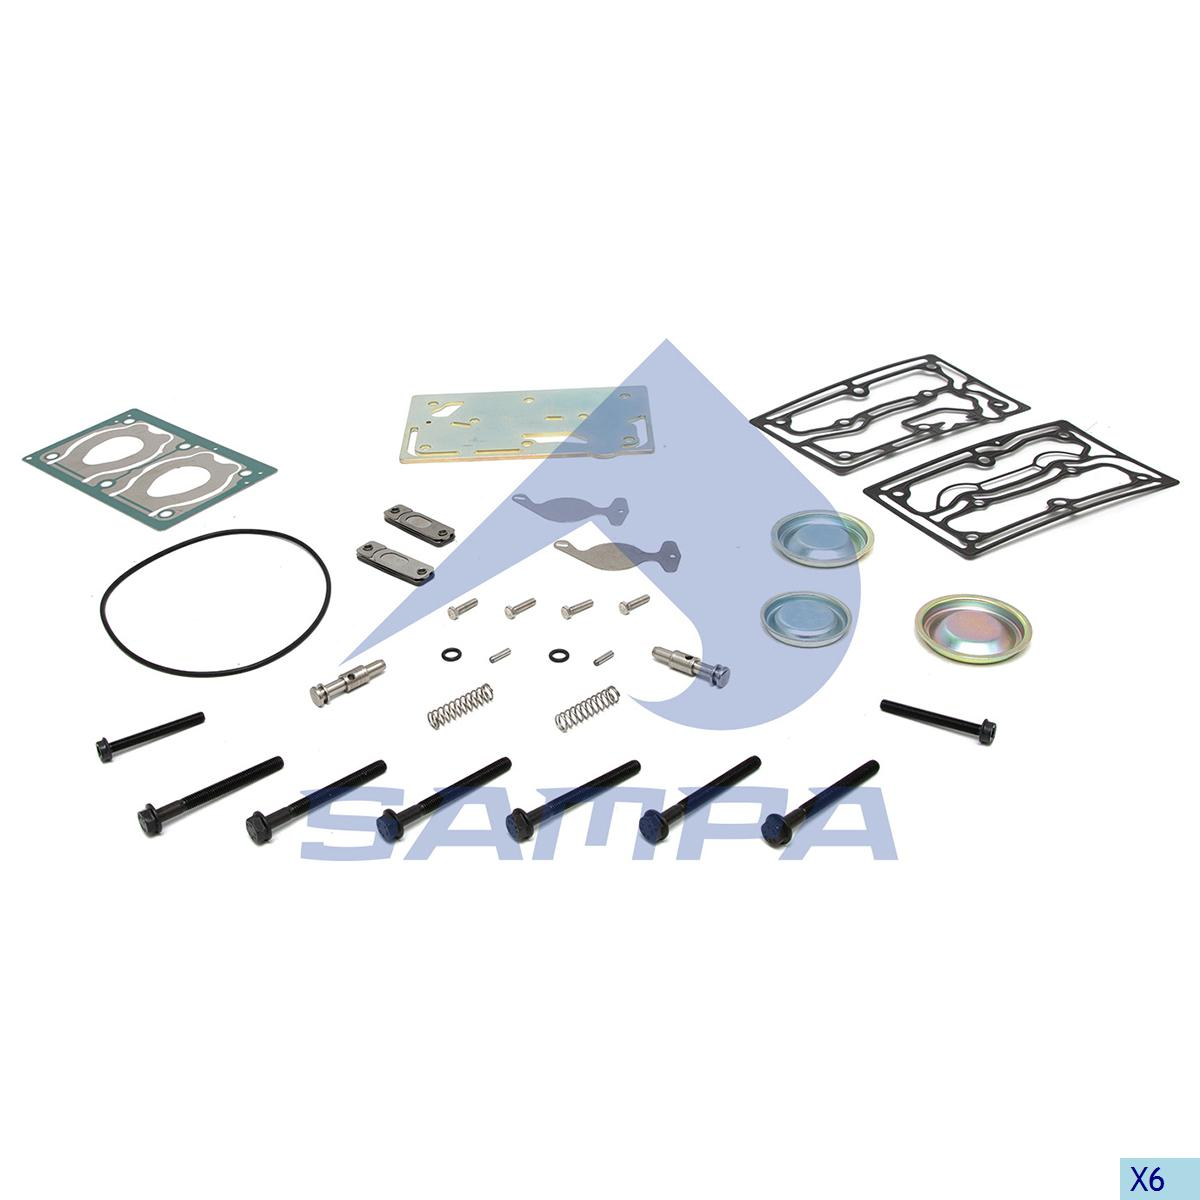 Repair Kit, Compressor, R.V.I., Compressed Air System